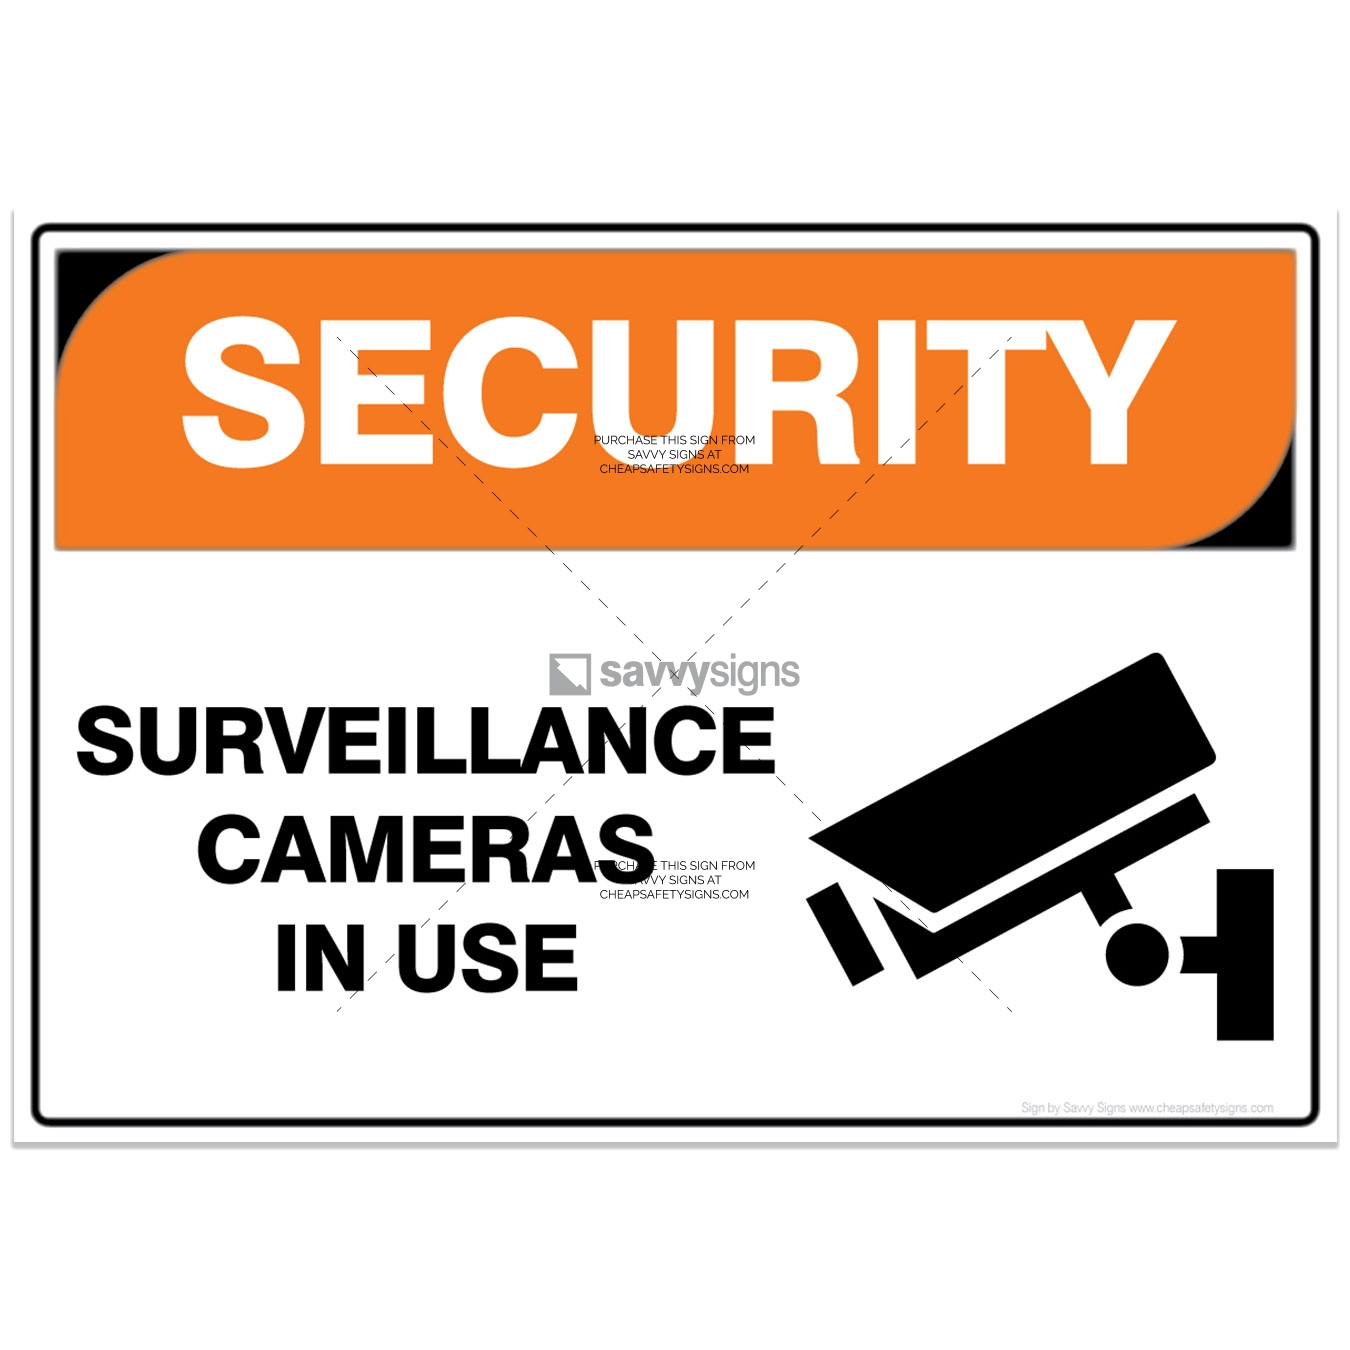 SSSEC3019-SECURITY-Workplace-Safety-Signs_Savvy-Signs_v3